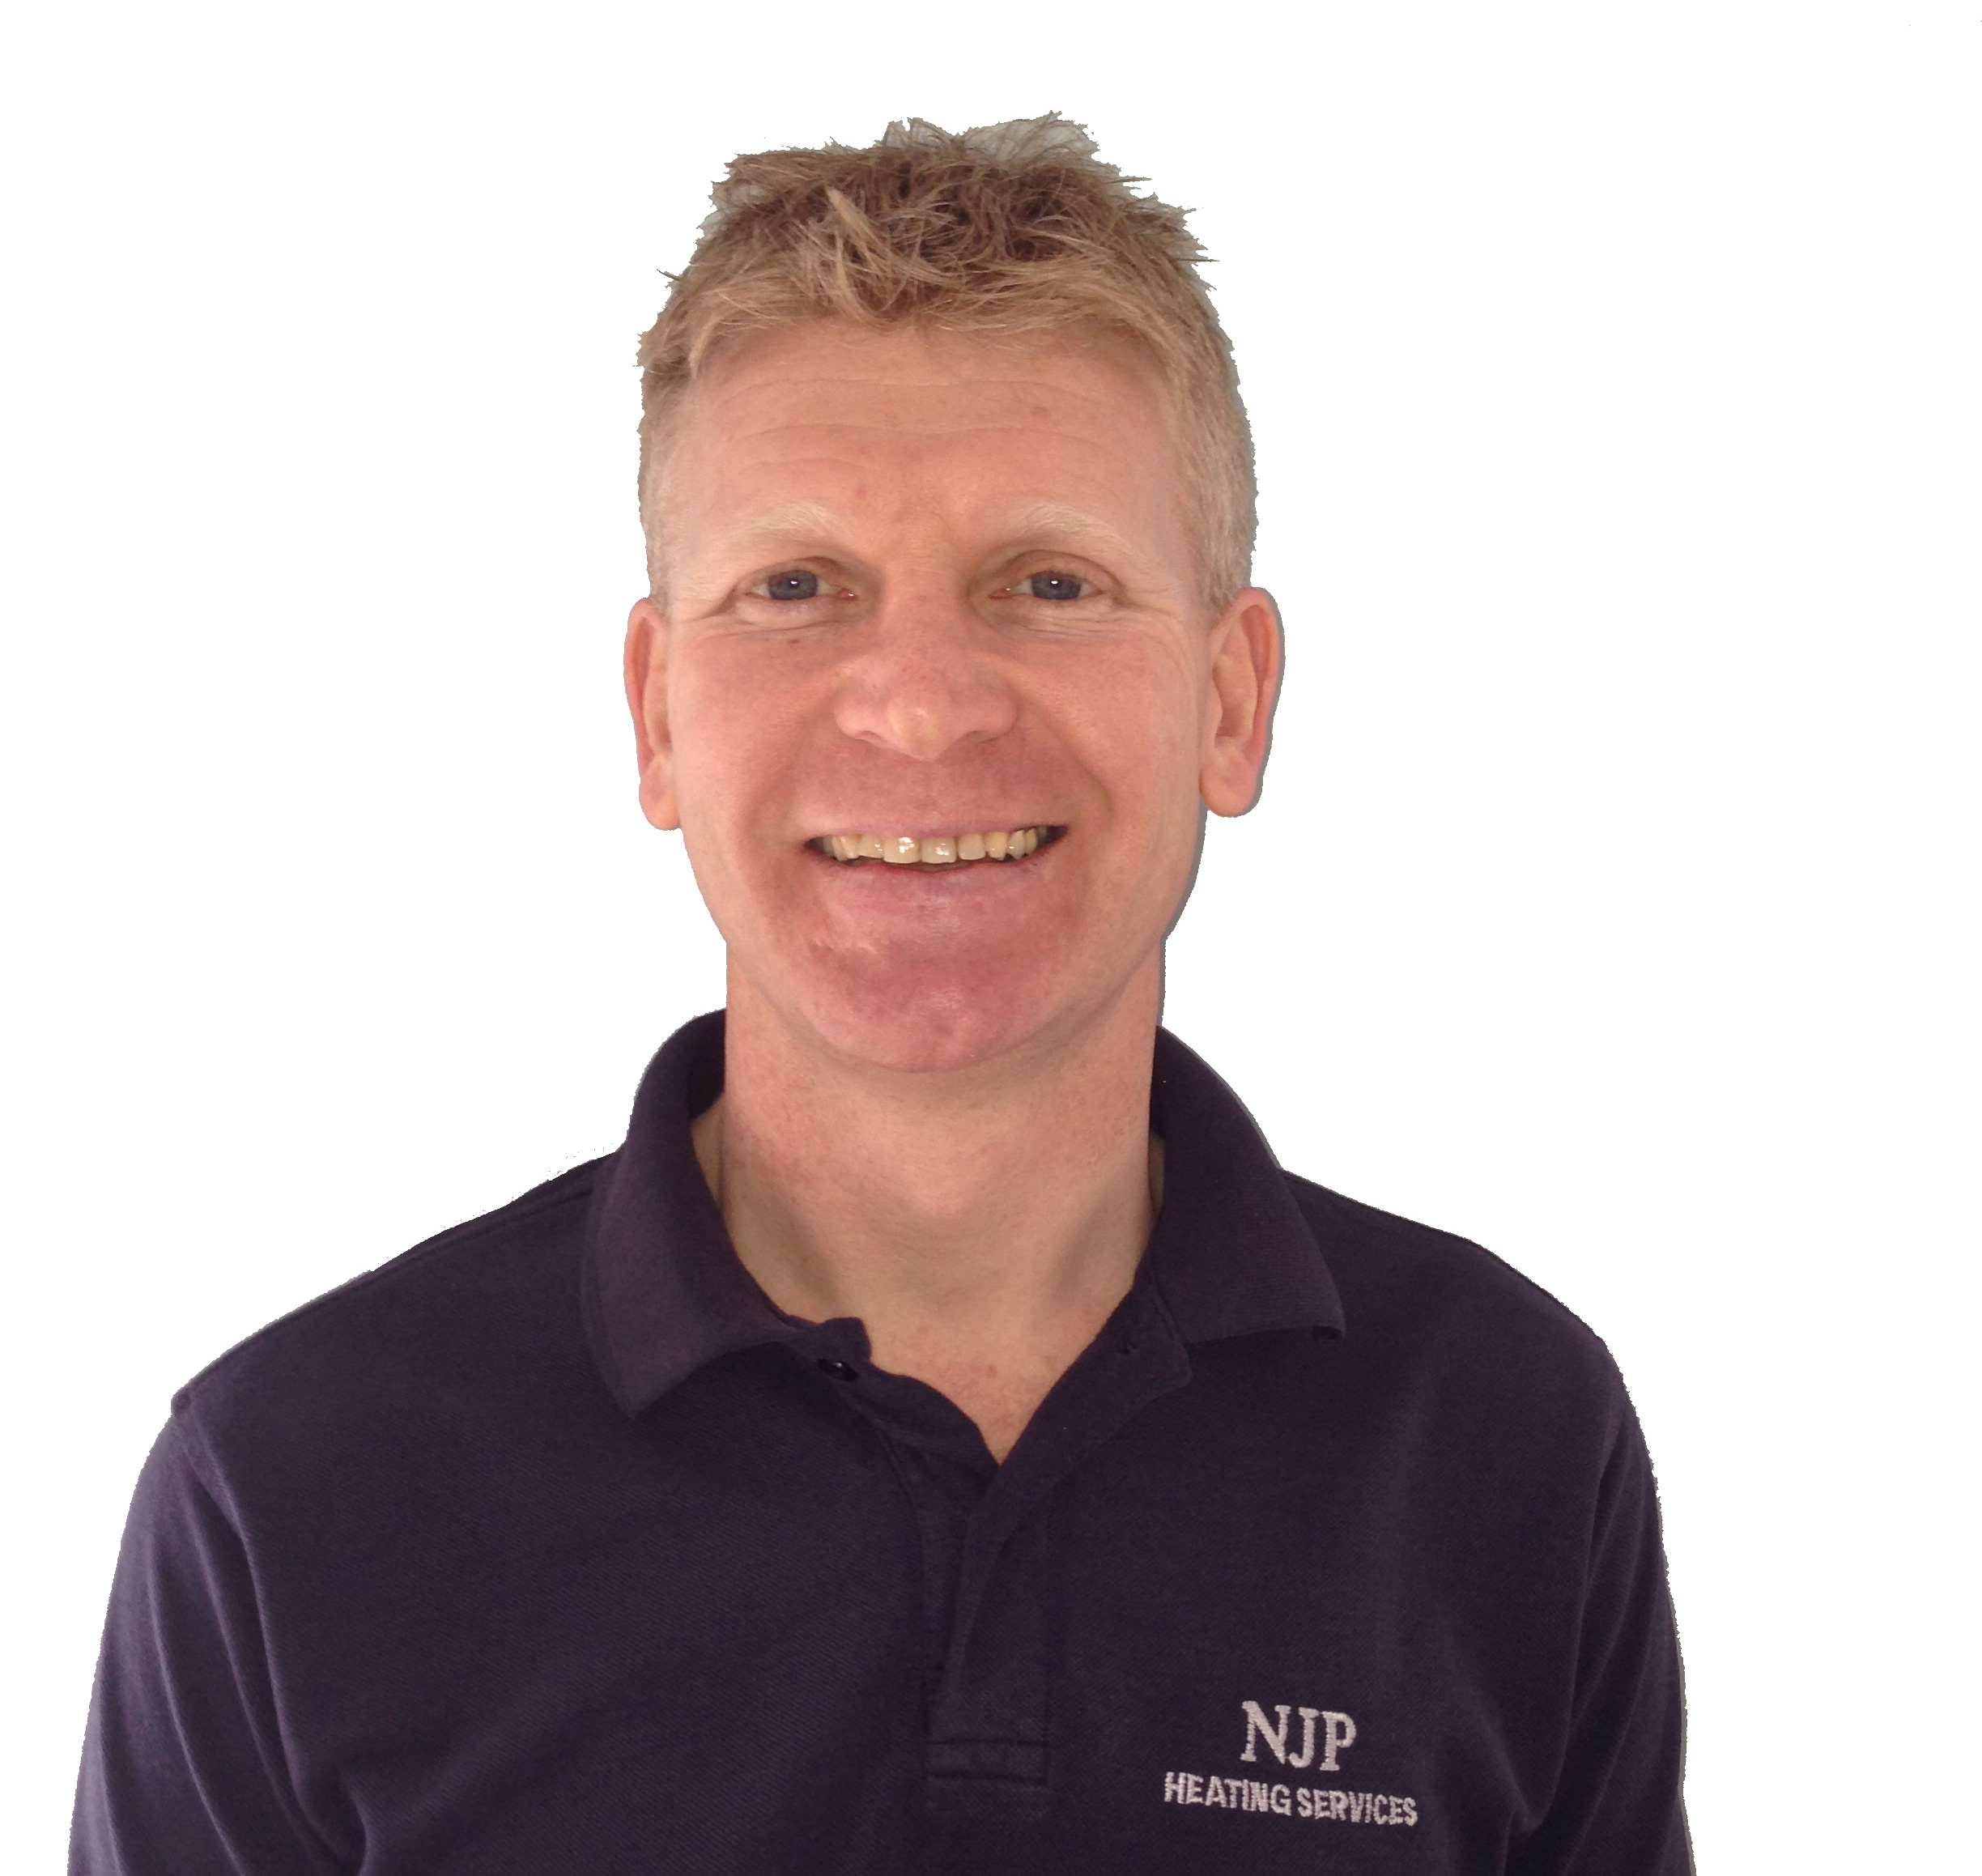 Nick Prickett, Director, NJP Heating Services Ltd